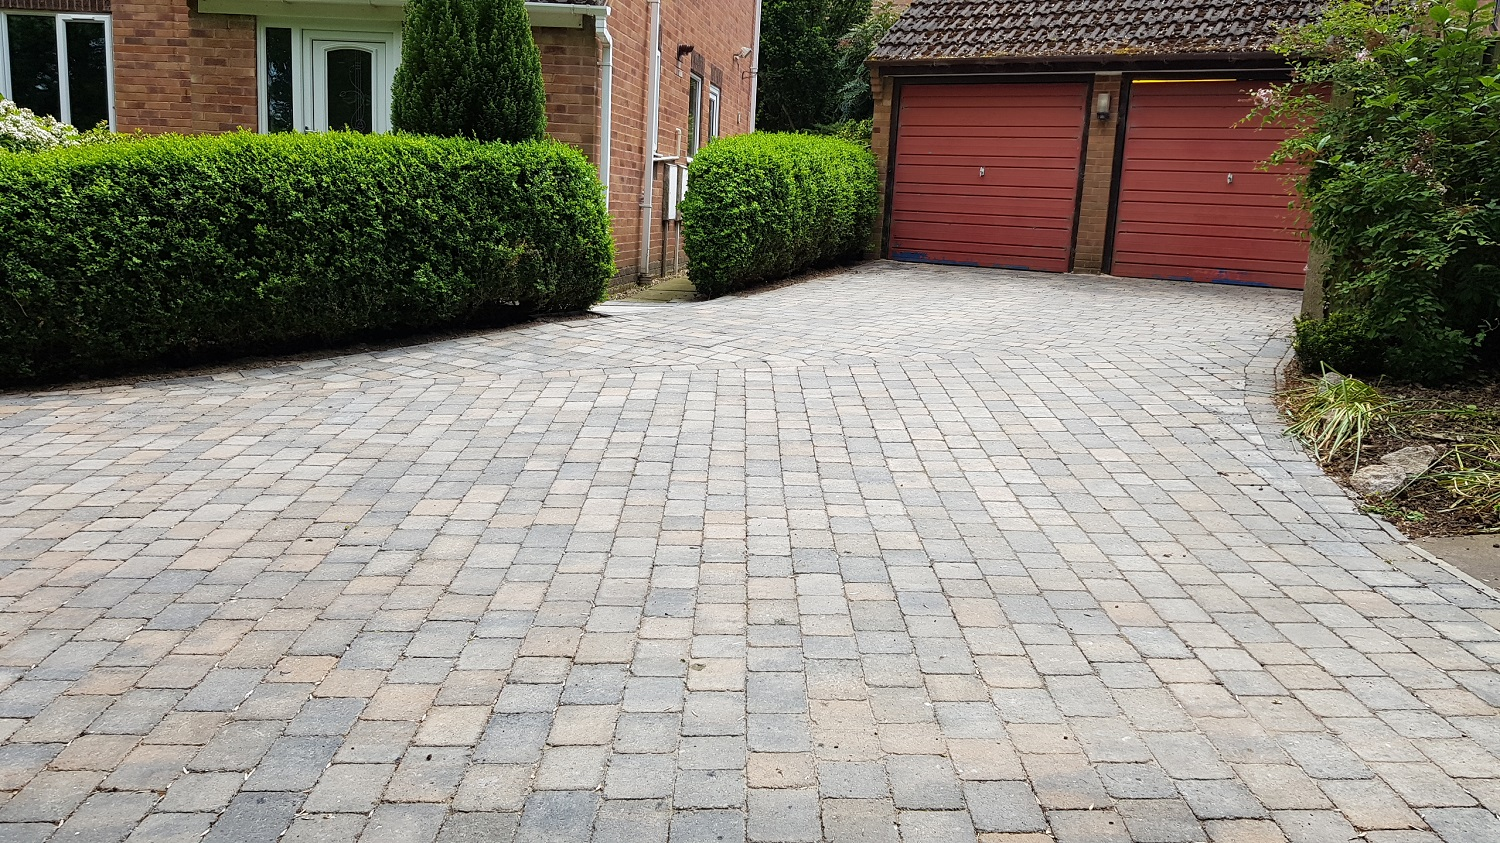 C27 Plaspave Sorrento Granite Stone and Sarsen Stone Block Paving Driveway at Linacre Woods in Chest